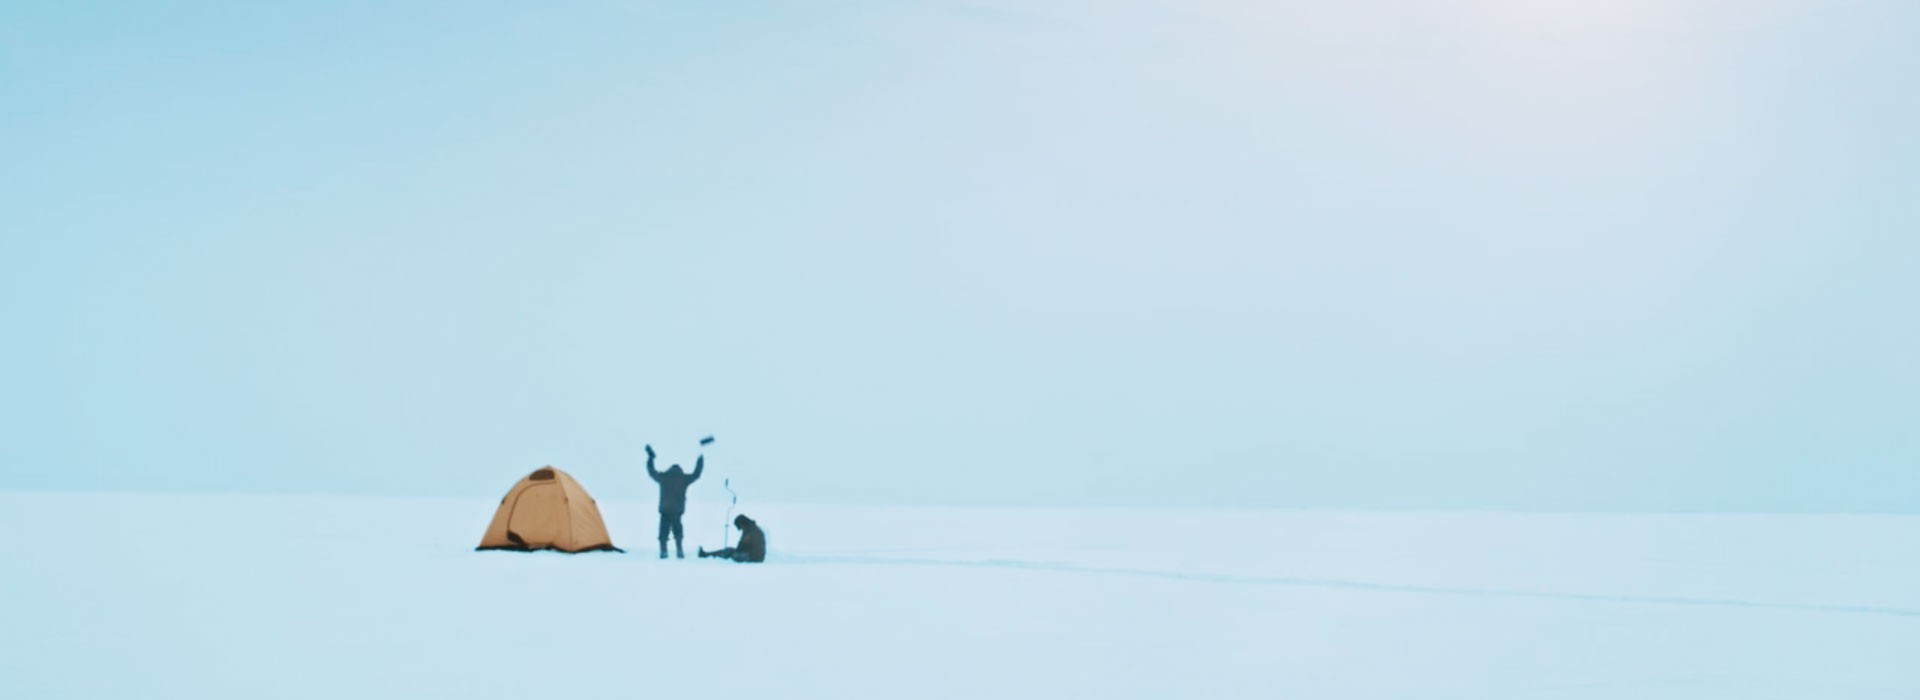 Frozen over: watch My Friend's Friend, our stunning short film of the month